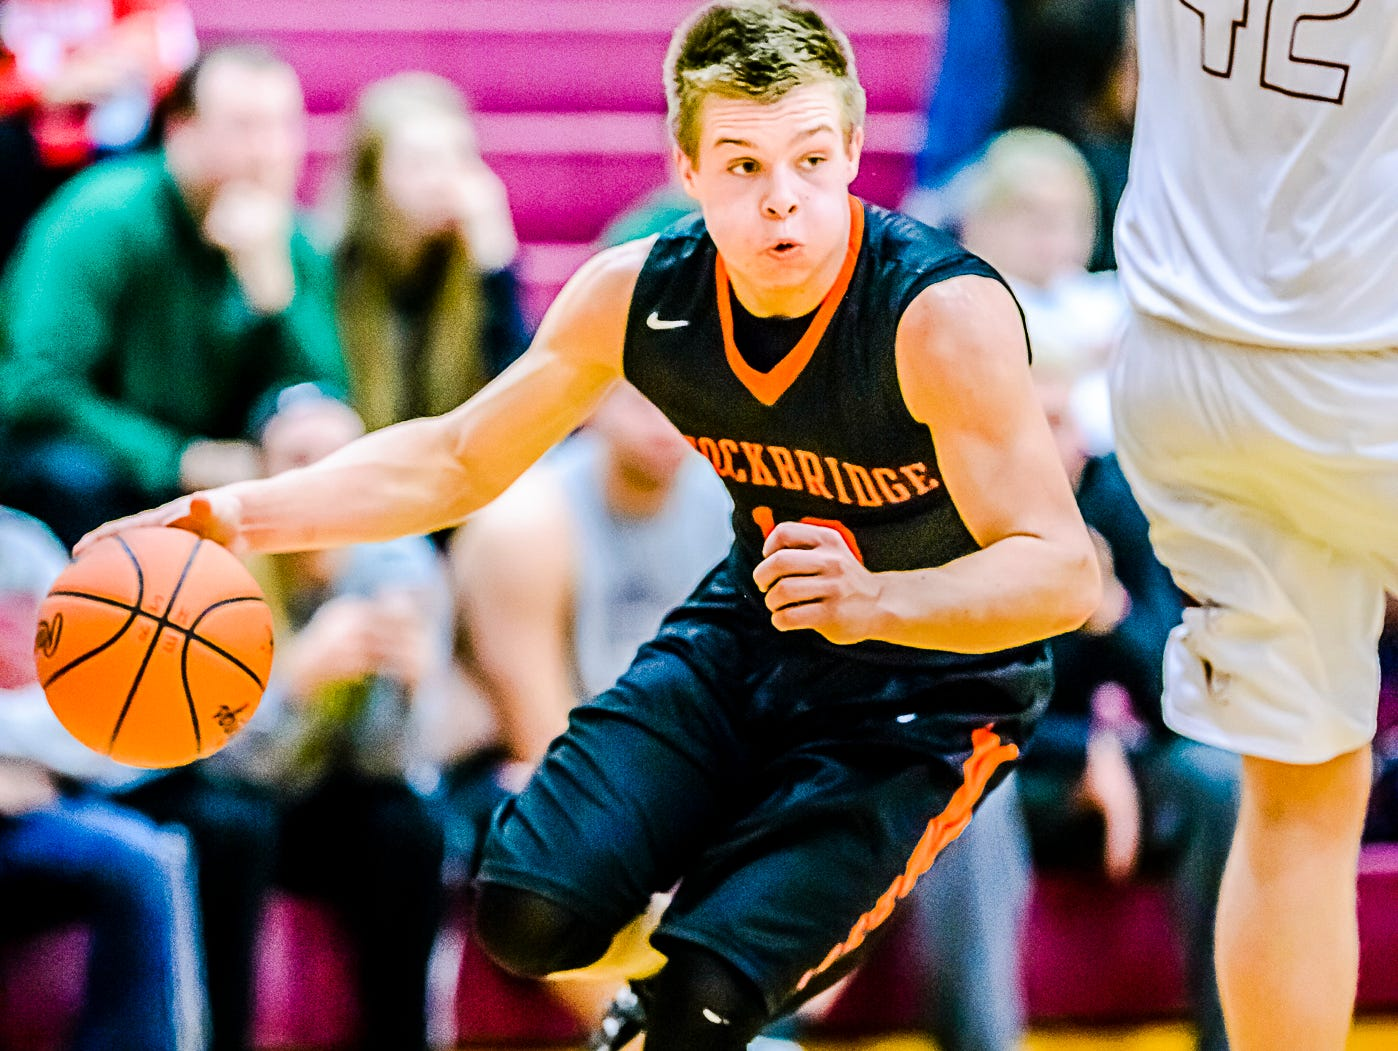 Stockbridge's Kolby Canfield was one of the top scorers in Tuesday's games.